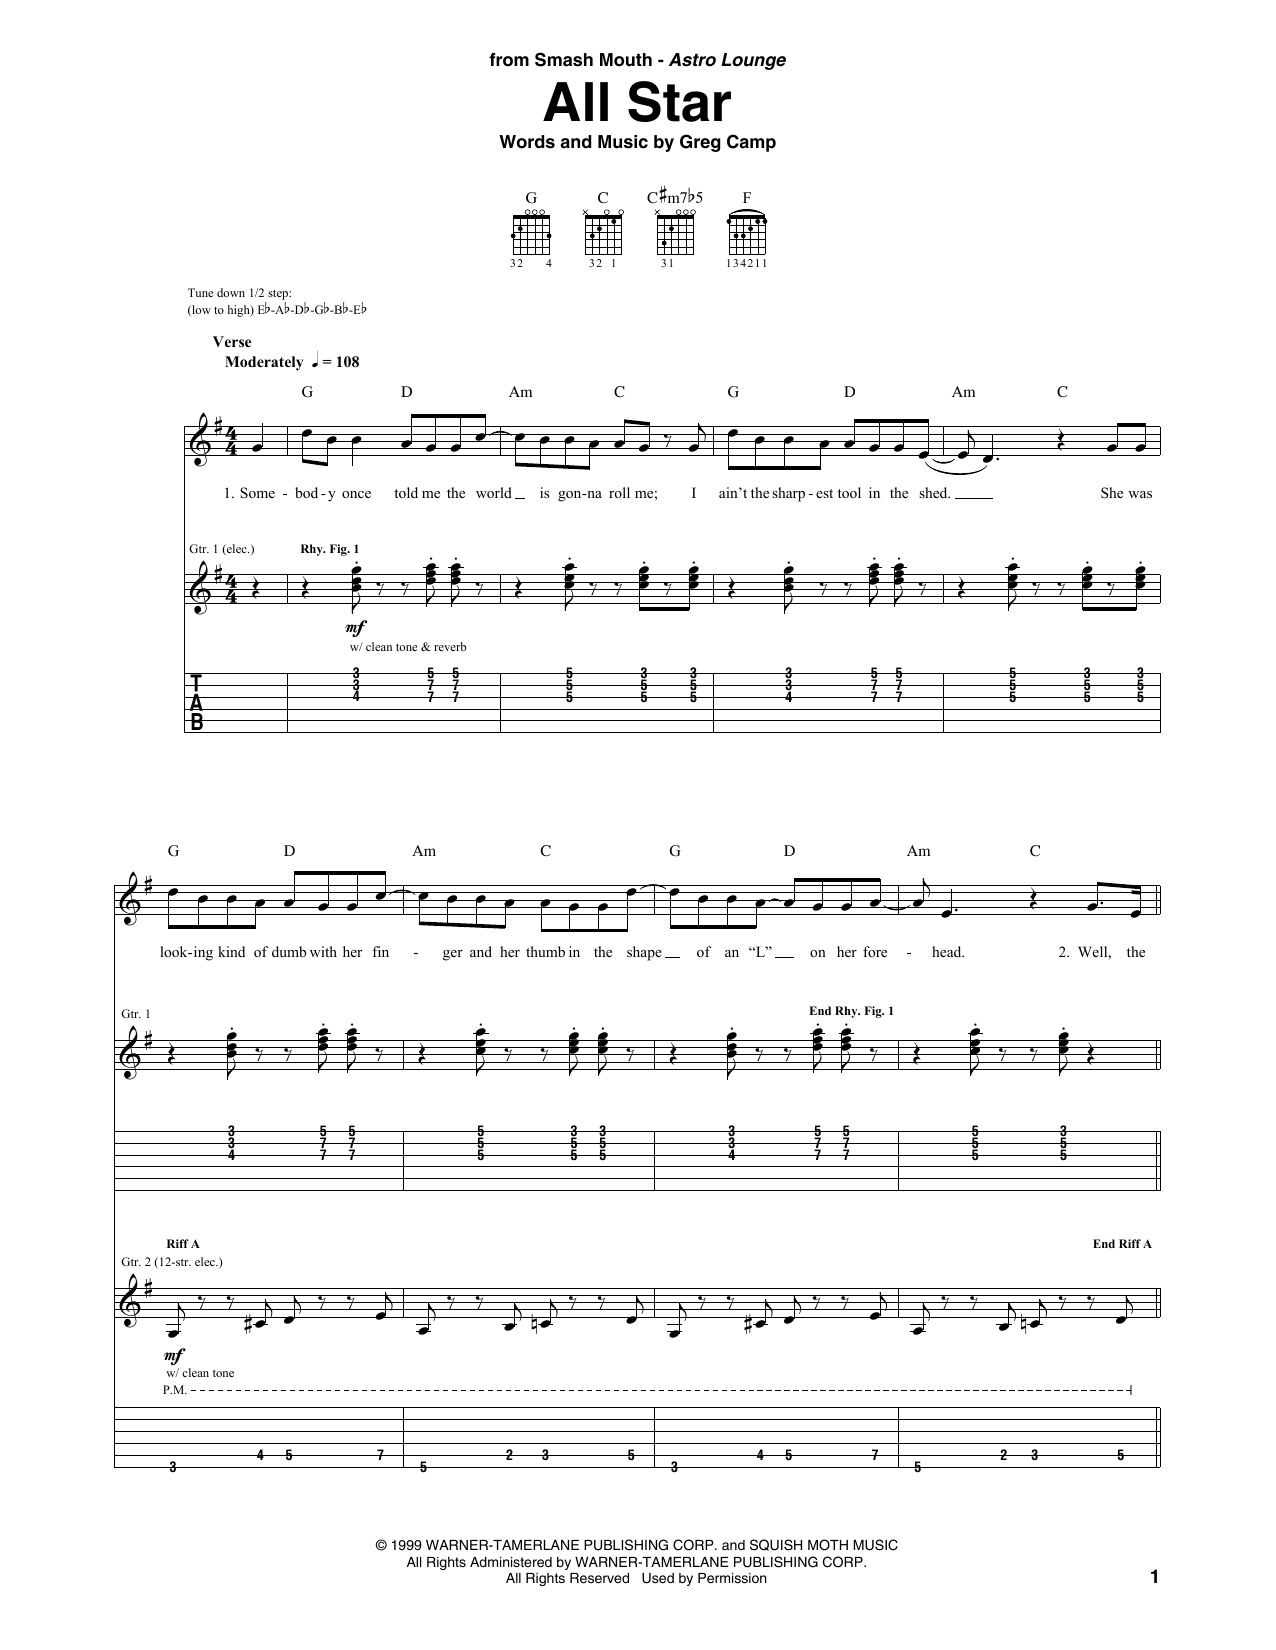 Sheet Music Digital Files To Print Licensed Smash Mouth Digital